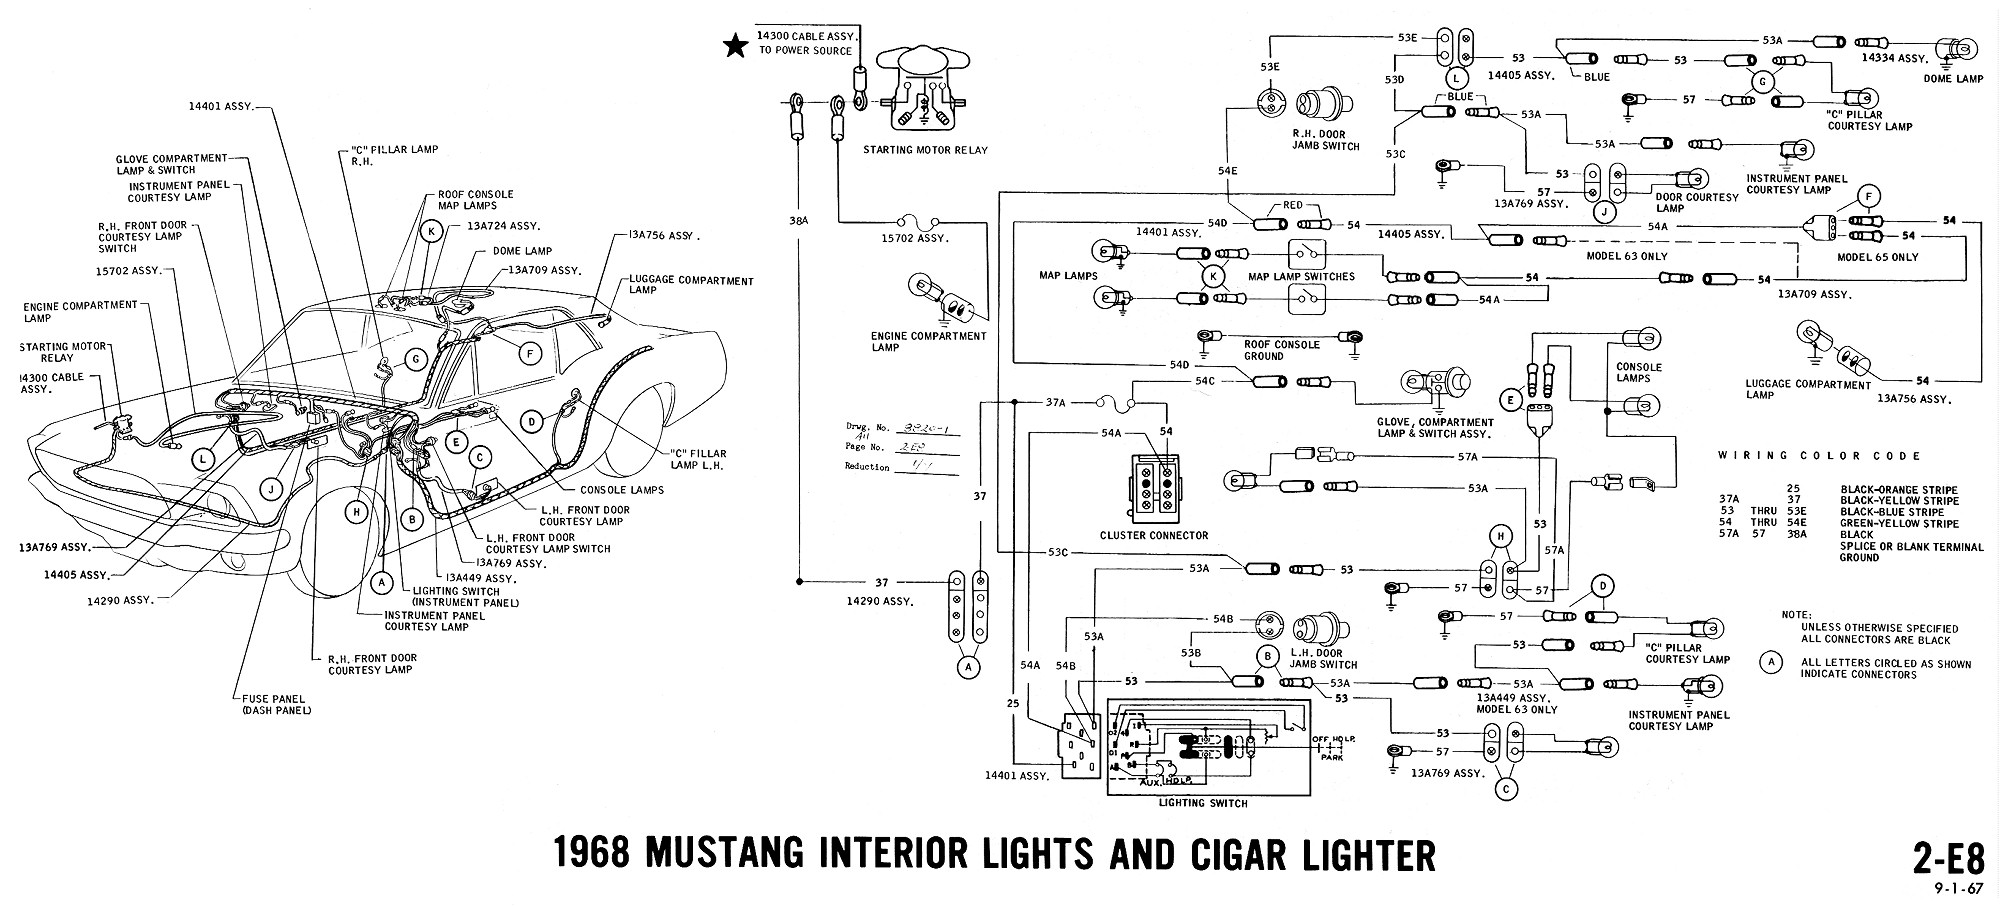 [ZTBE_9966]  1966 Mustang Radio Wiring Diagram 2000 Toyota Tundra Wiring Diagram -  hazzard.astrea-construction.fr | 2015 Mustang Wiring Diagram |  | Begeboy Wiring Diagram Source - ASTREA CONSTRUCTION